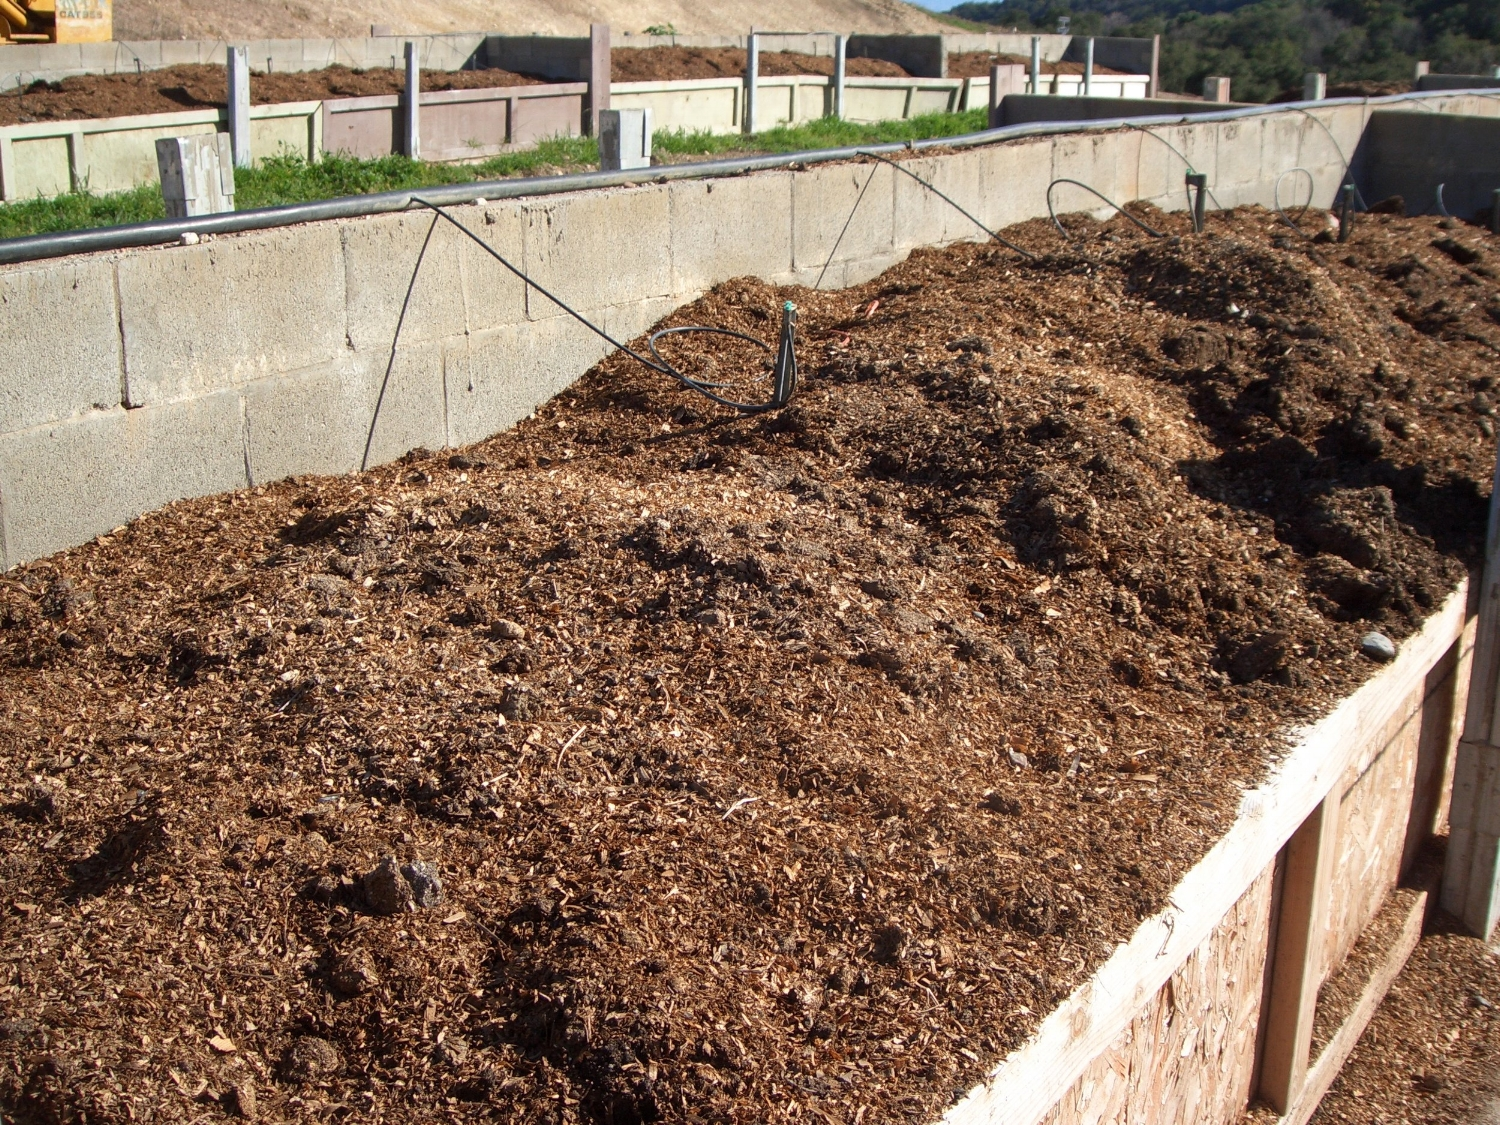 Our very own earthworm beds, this is where we harvest our castings from.